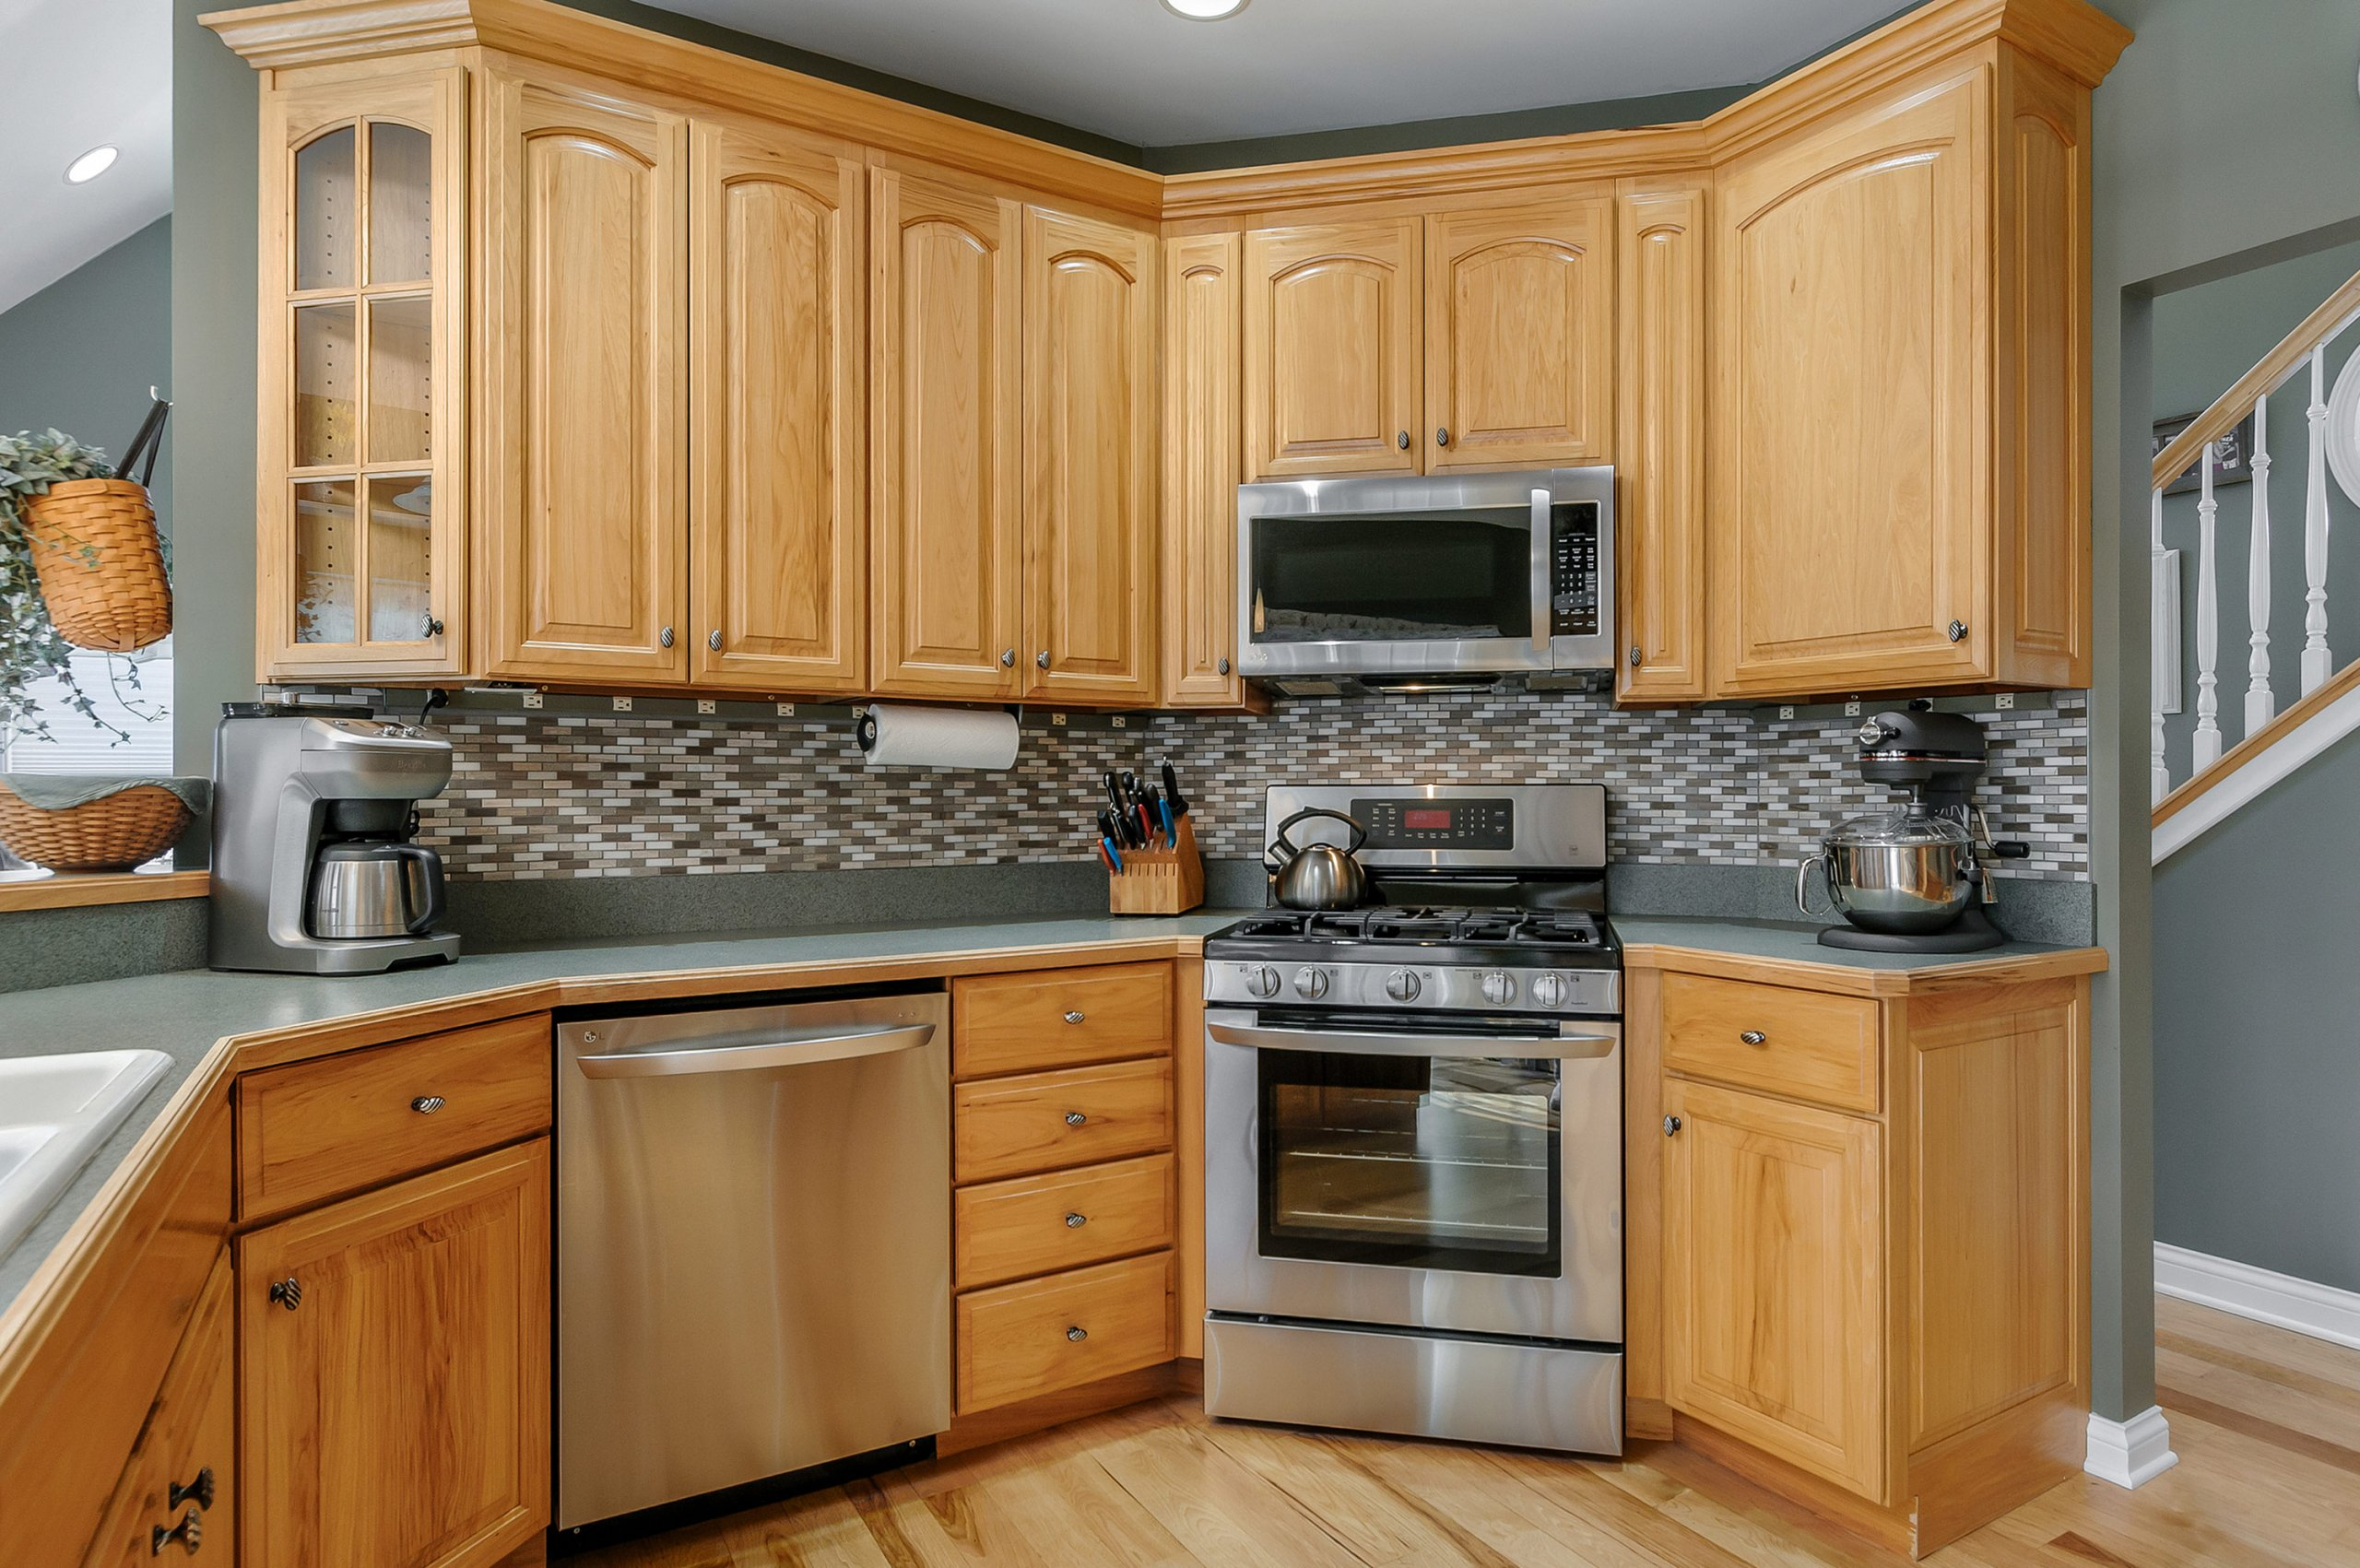 Natural maple kitchen with stainless steel appliances.